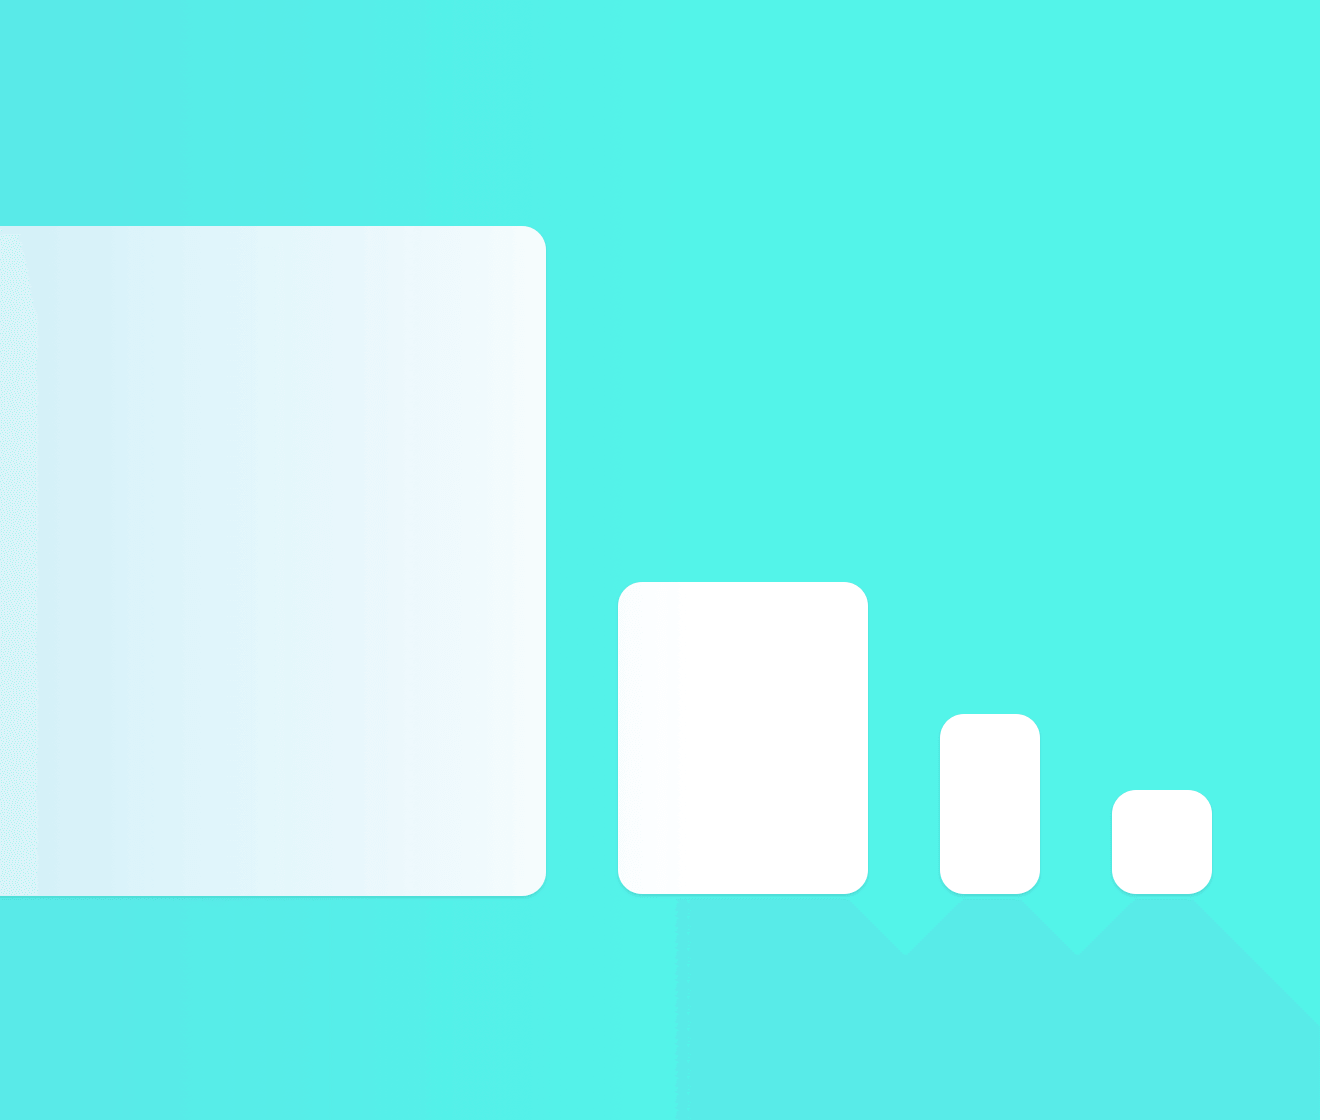 Going from UX wireframe to product